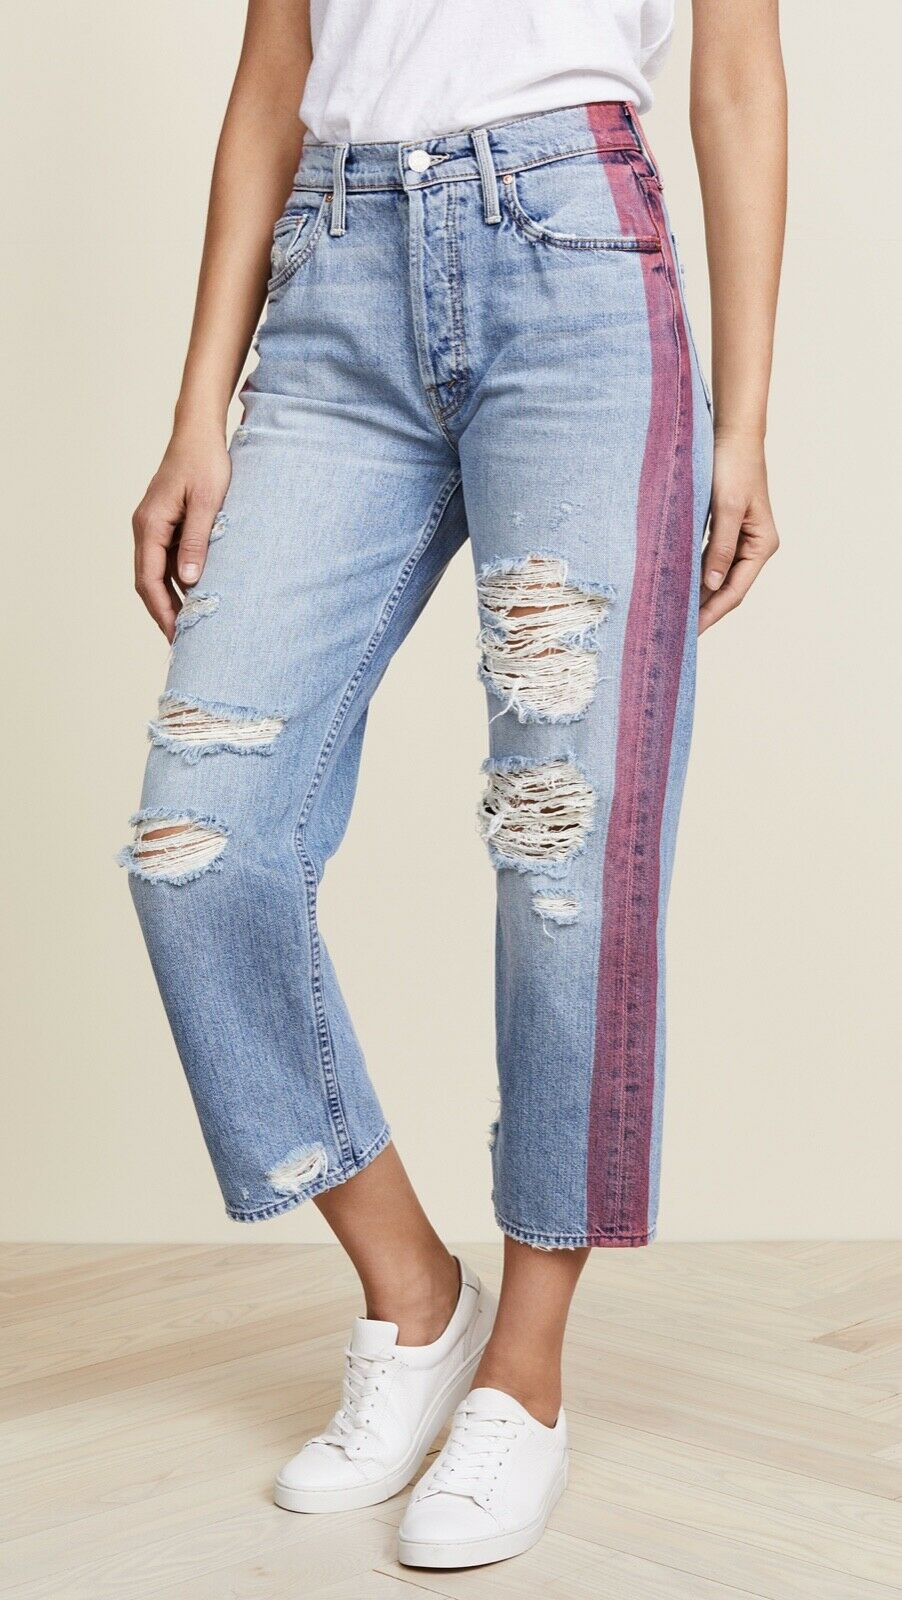 MOTHER The Thrasher Striped Hanging By A Thread Light Washed Distressed Jeans 24